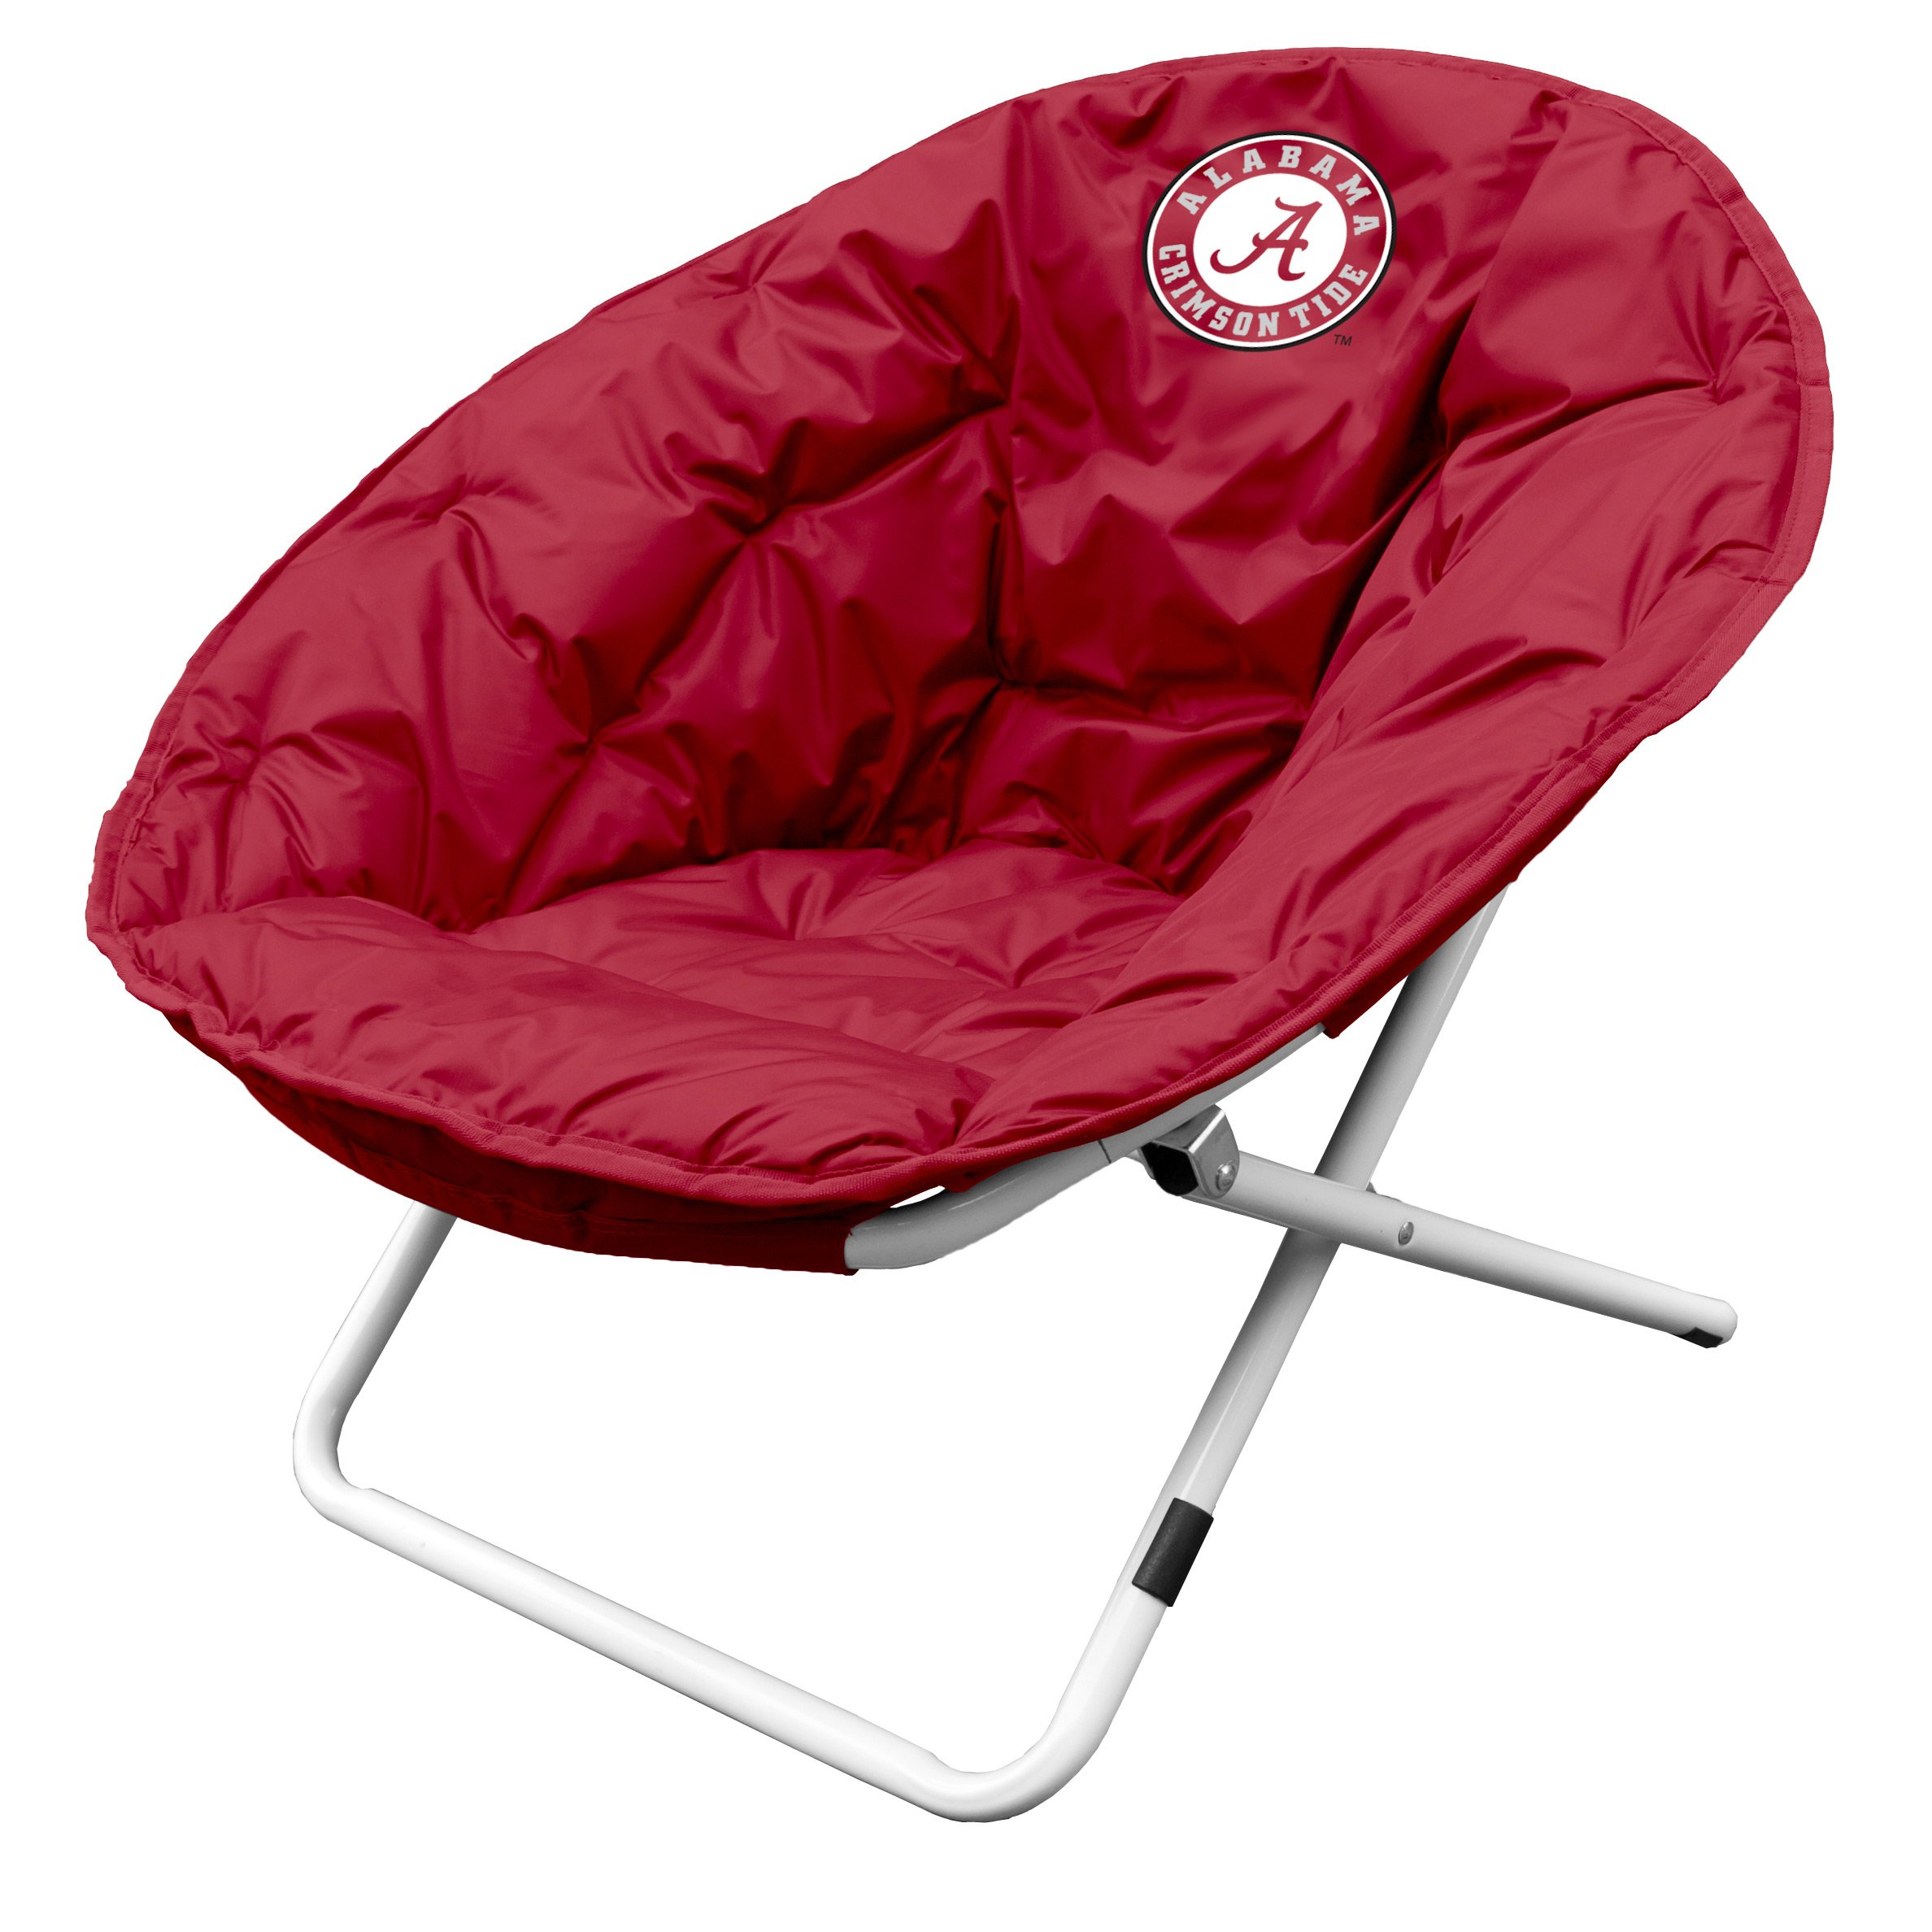 Alabama Crimson Tide Sphere Chair by Logo Brands (Image #1)